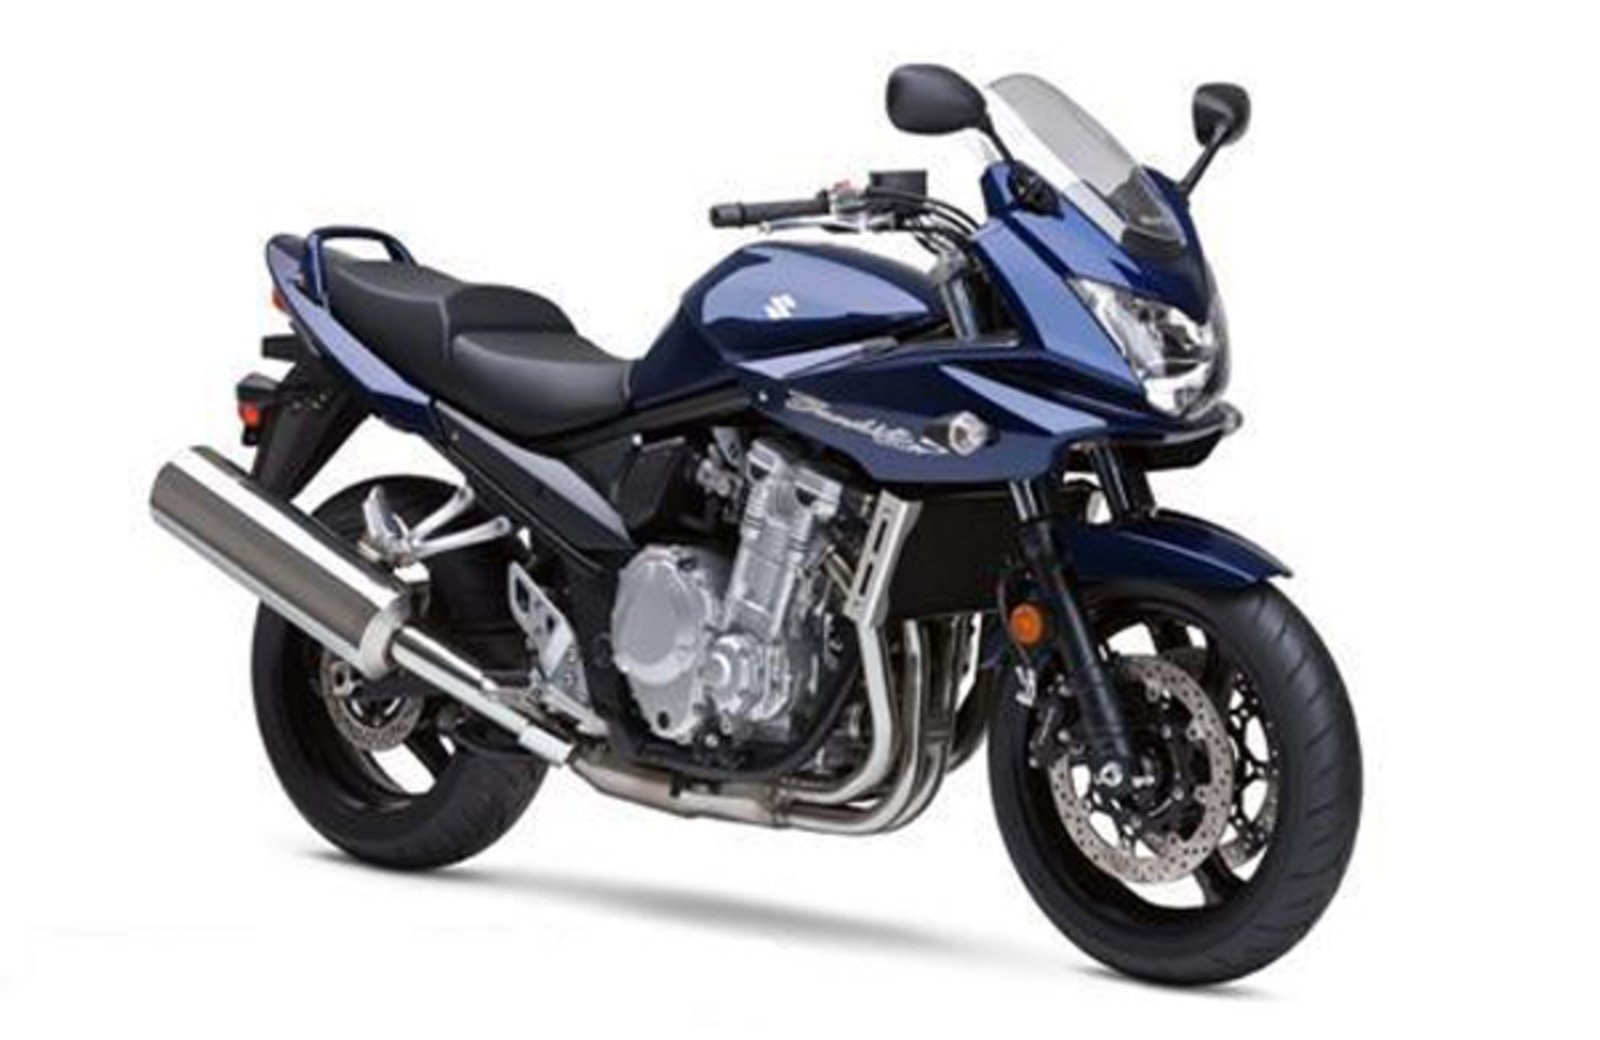 2009 suzuki bandit 1250s abs review top speed. Black Bedroom Furniture Sets. Home Design Ideas